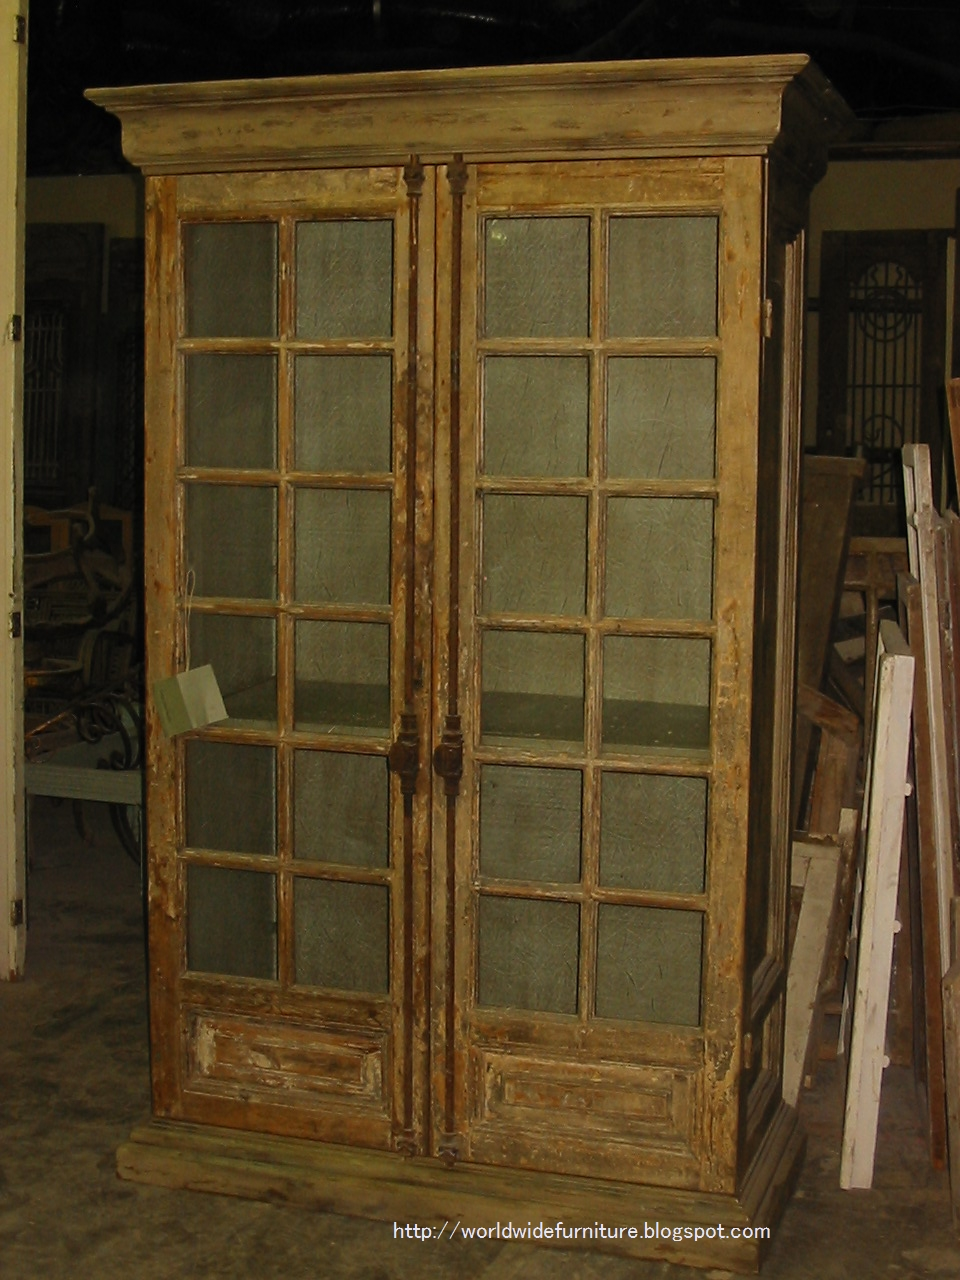 Antique doors repurposed furniture gallery for Idea for old doors